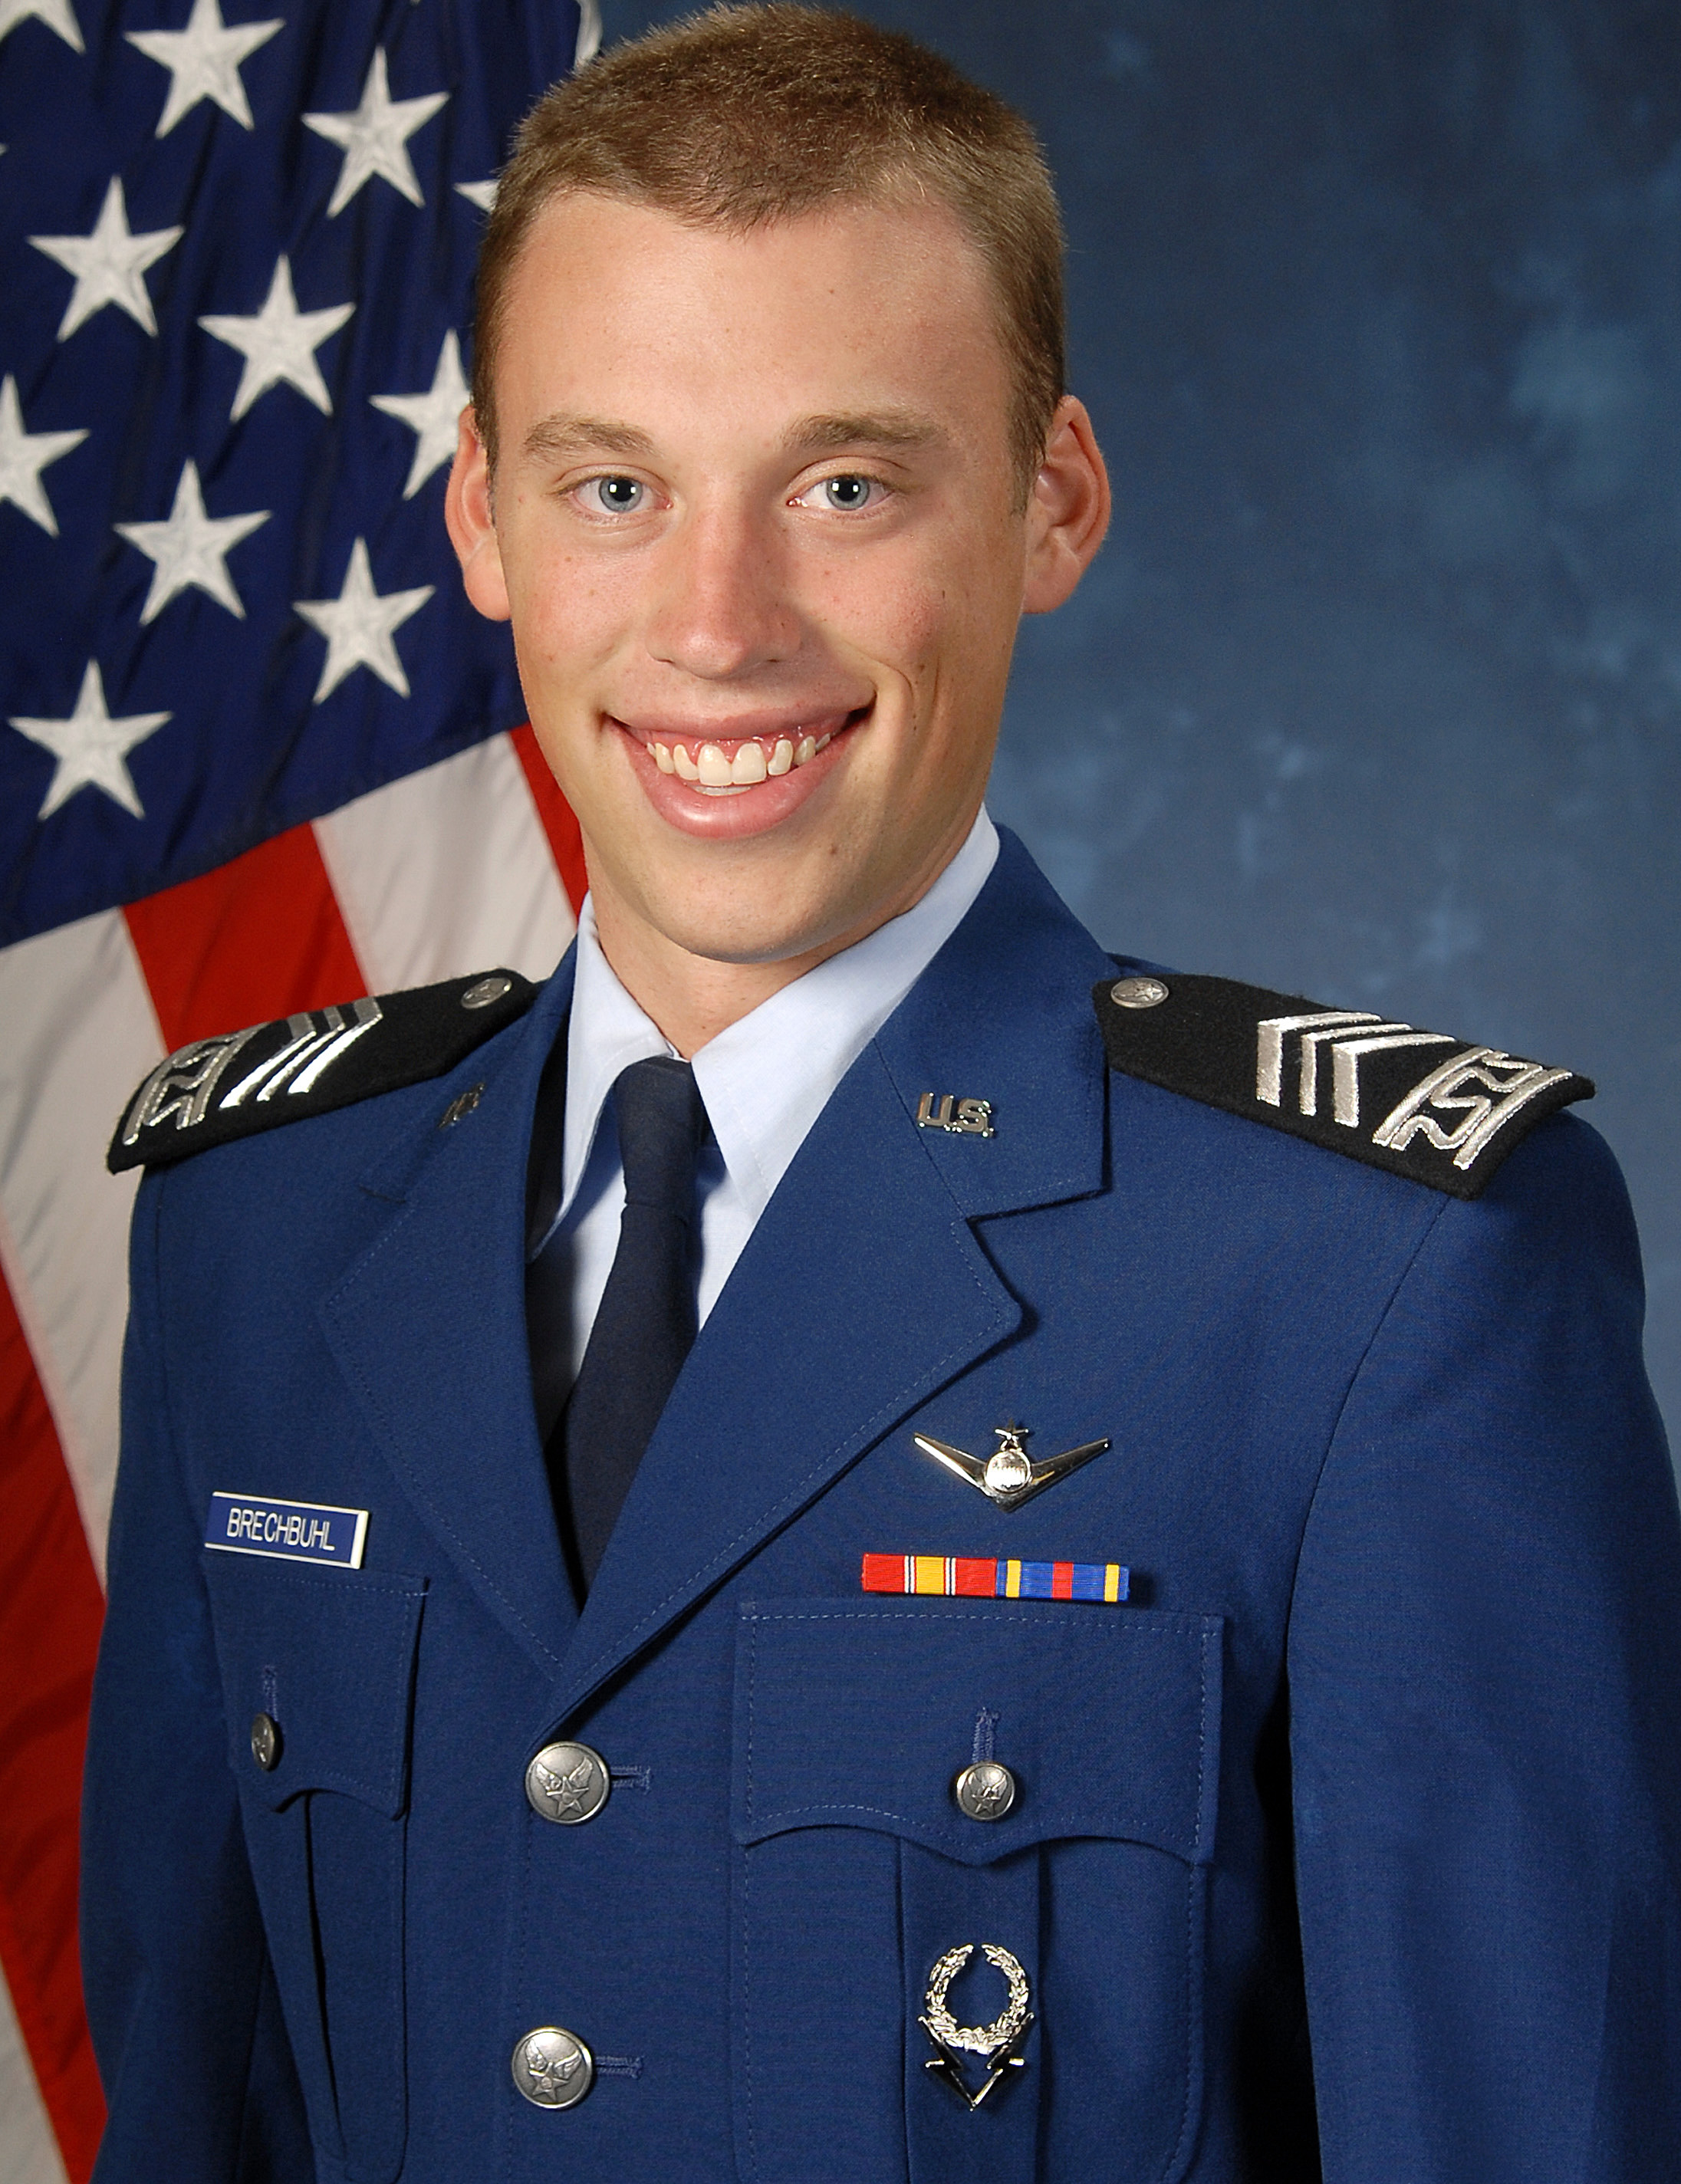 All Air force cadet uniform such person